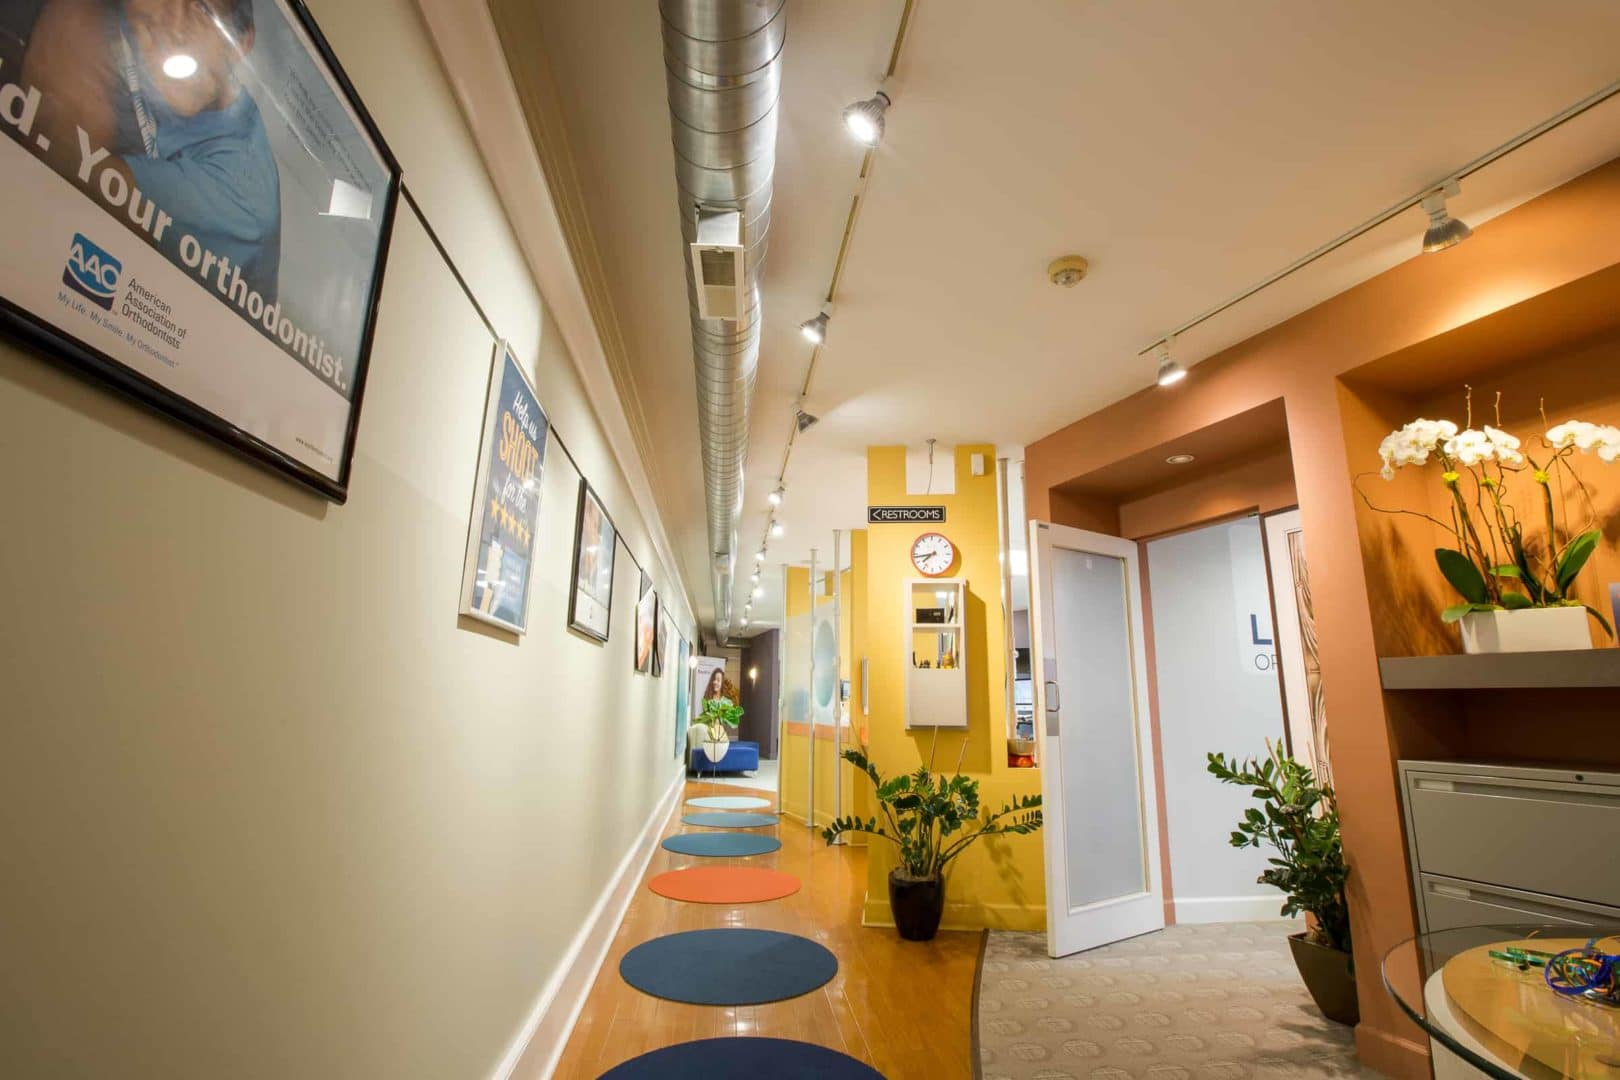 Our Orthodontic Office